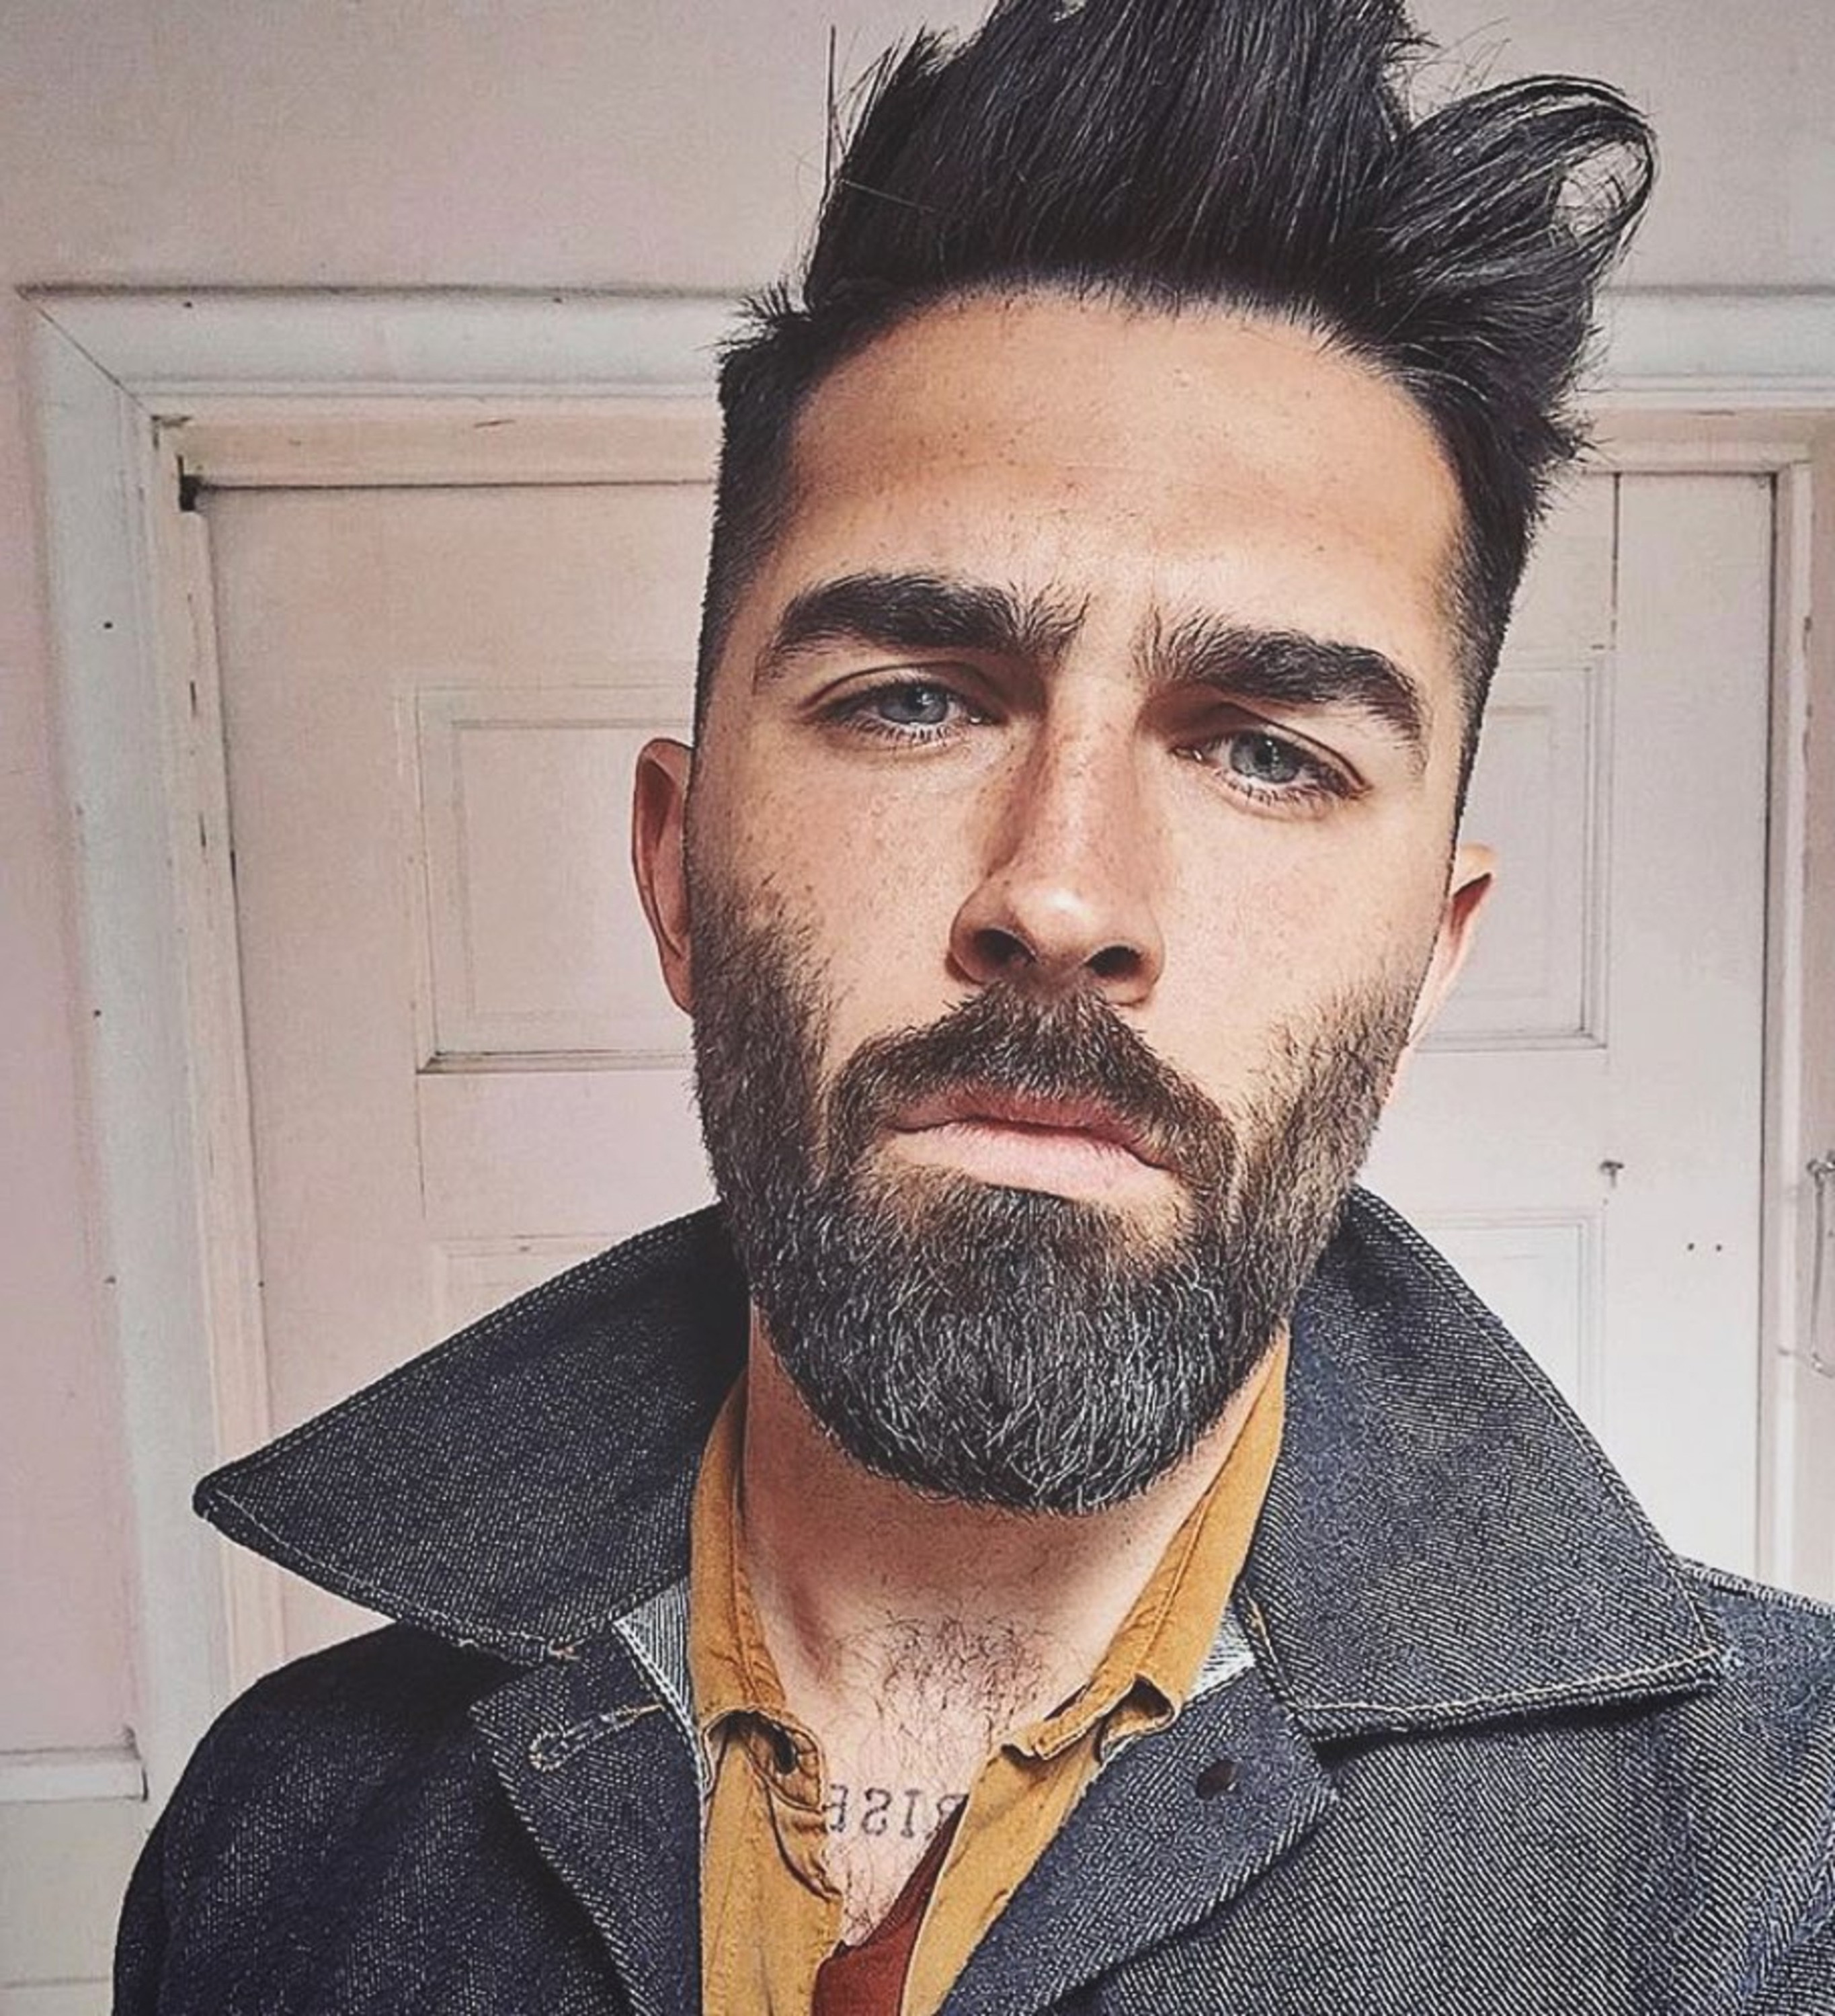 A well-kept short beard for men.